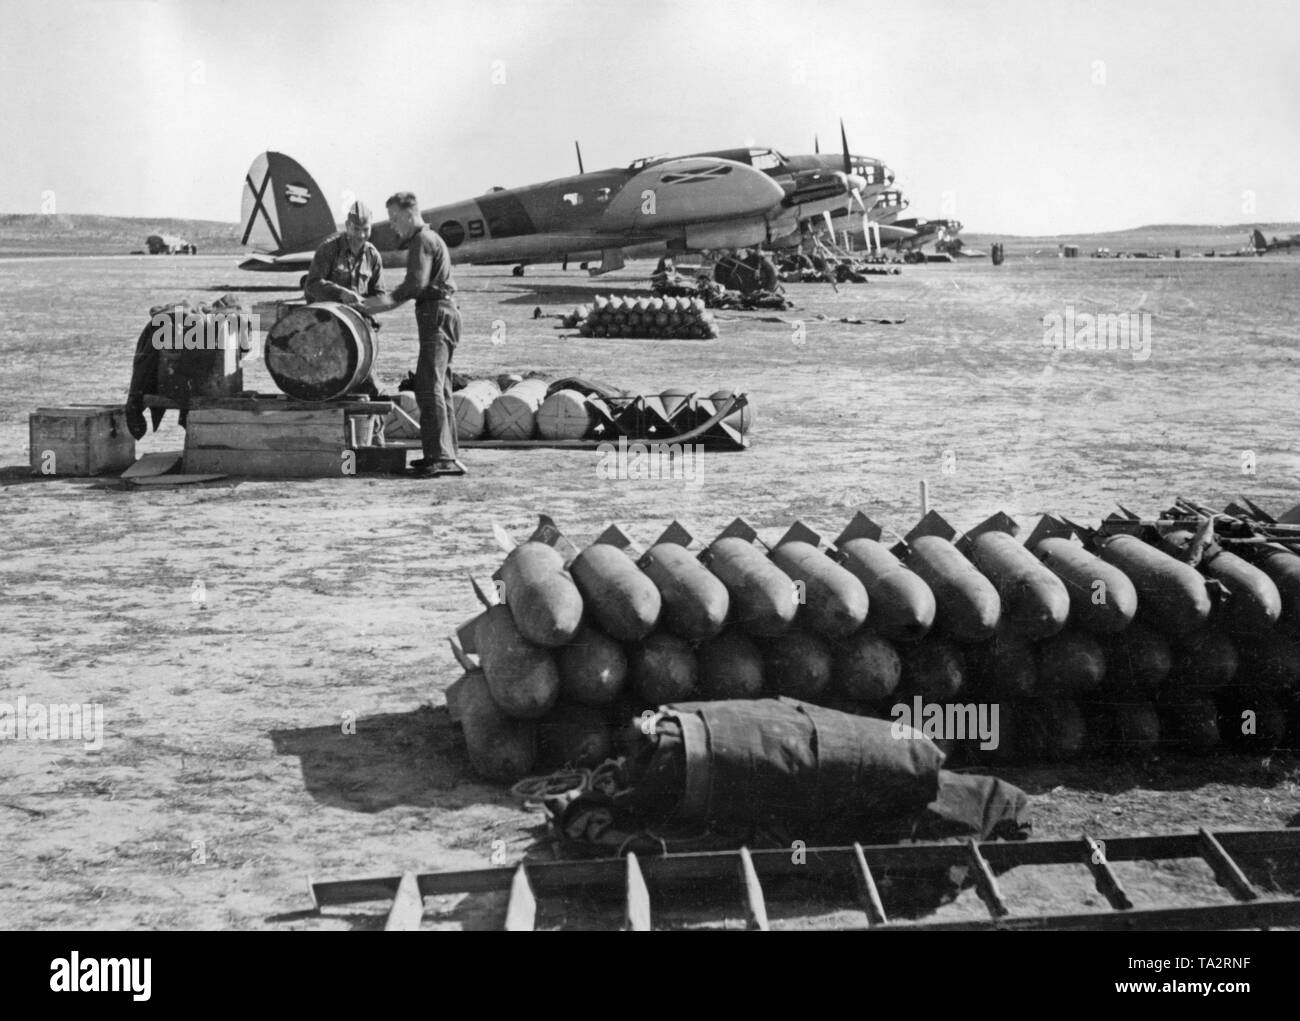 Photo of German Heinkel He 111 fighter bombers of the Condor Legion (Bomber group K / 88) on the airfield of Lerida, Catalonia, 1939. In the foreground there are grenades. Behind, ground personnel are working. The Saint Andrew's Cross of the Spanish Air Force is visible on the vertical tail. - Stock Image